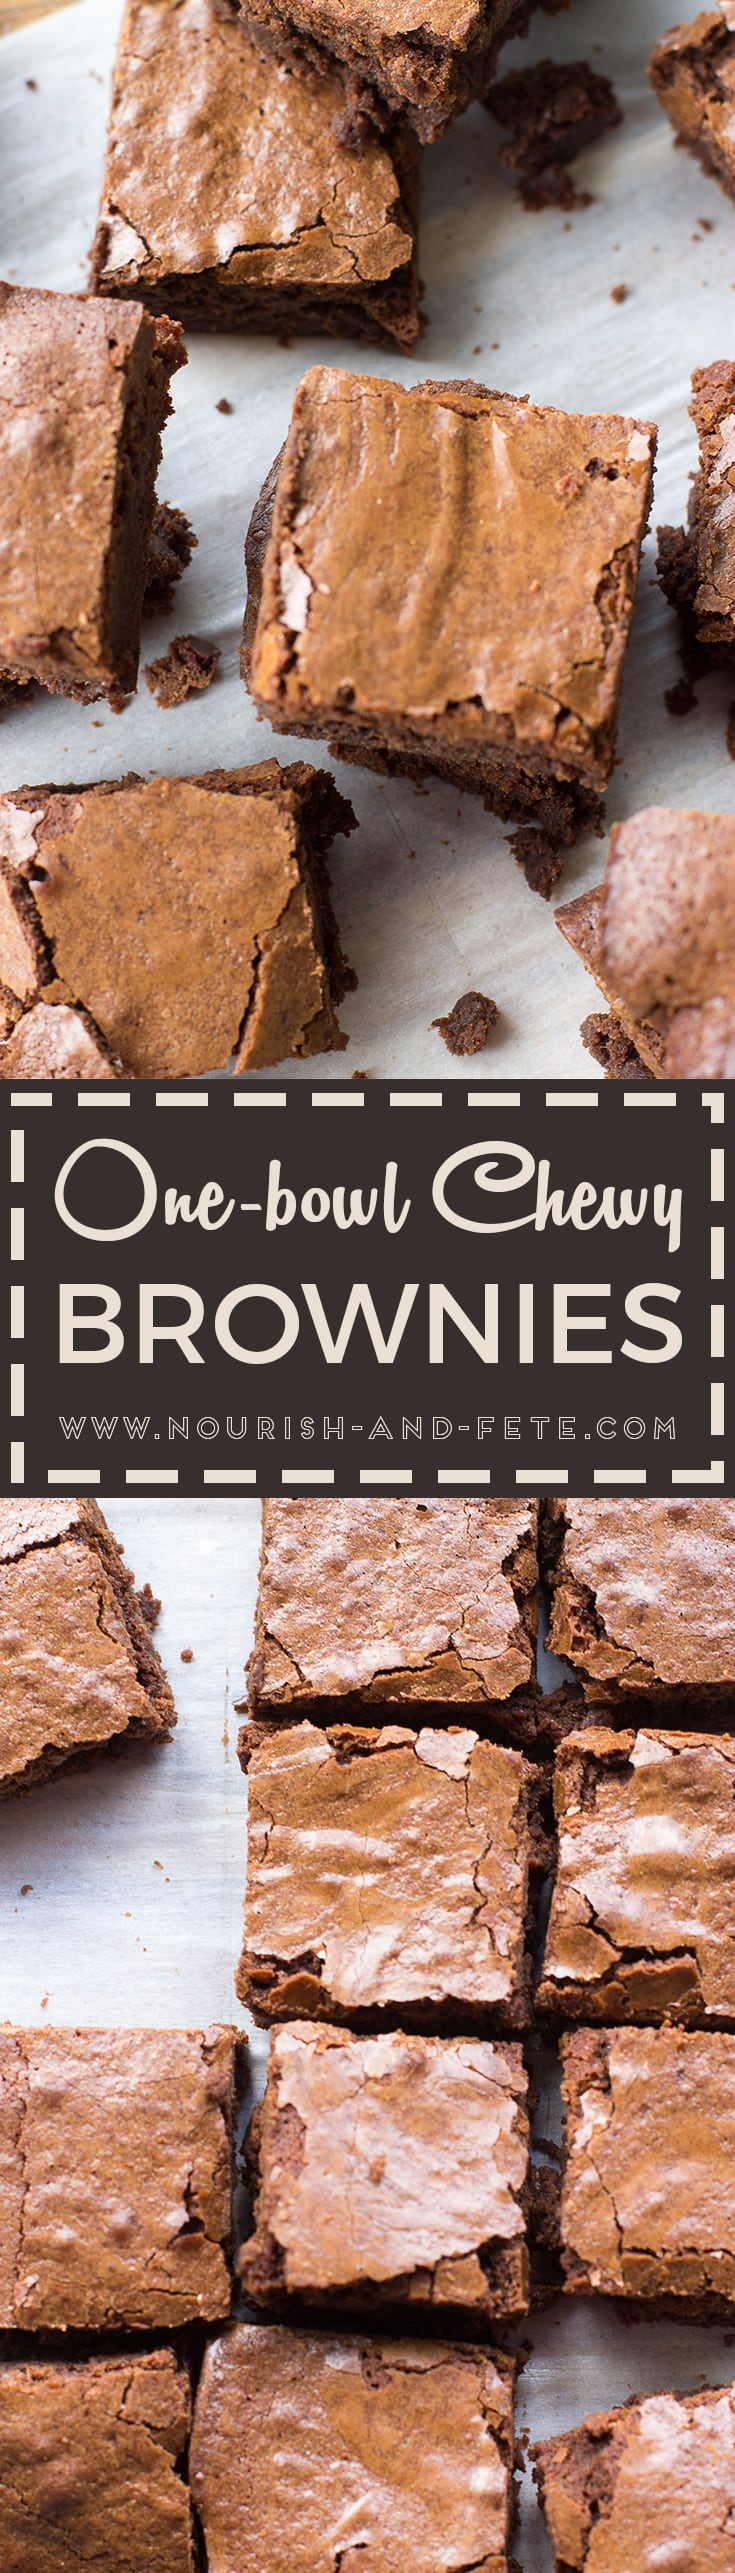 Classic, chewy, chocolate-packed brownies made from scratch in just one bowl with pantry staples, and better than even the best boxed mix.